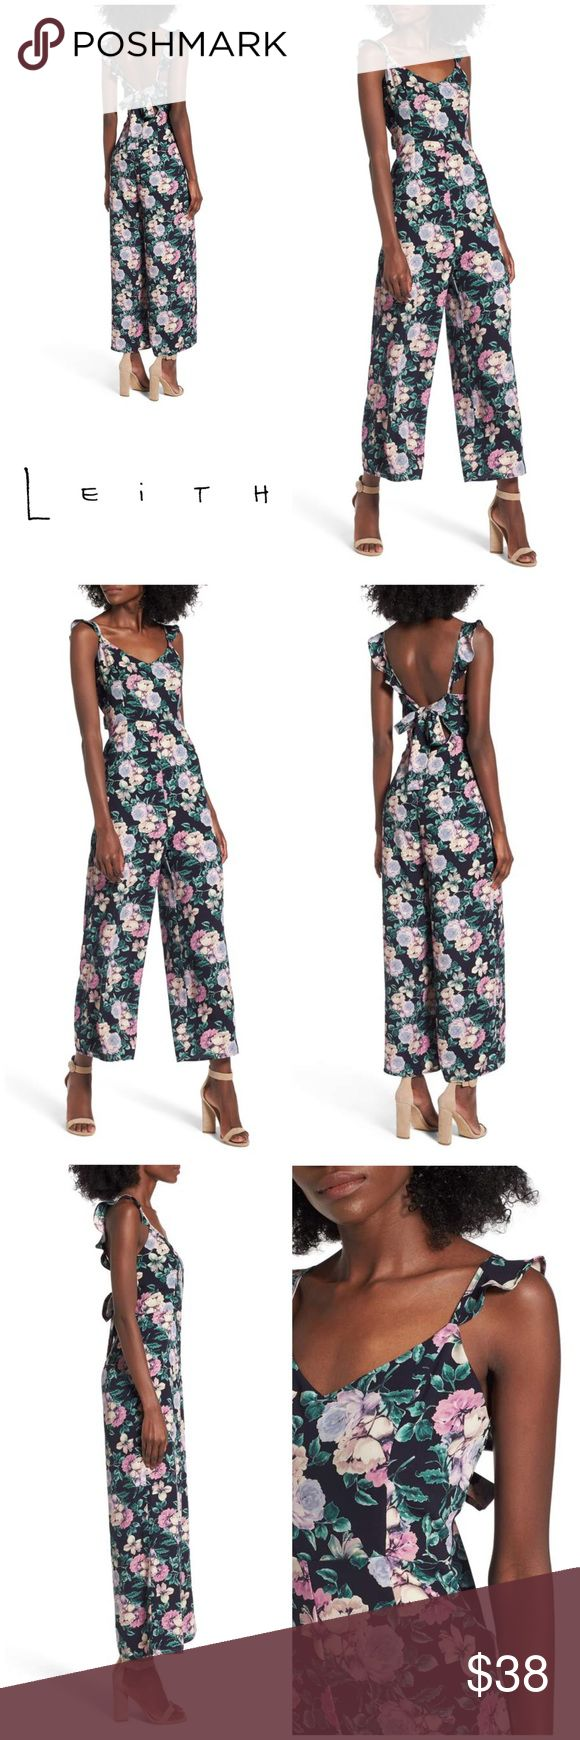 """New LEITH Floral Ruffle Jumpsuit New with tags, LEITH Floral Ruffle Jumpsuit   Size Small Bust: 34"""" Waist: 26"""" Hips: 36"""" Inseam: 24"""" Length: 55""""  Originally bought for a client, I'm currently cleaning out my client closets. Open to offers on bundles. 15% off bundles of 3+. Shipping cost is the same with one or multiple items! New with tags from Nordstrom's Outlet Mall.   Free gift with every purchase! Your purchase goes towards the non-profit organization I'm founding! <3 Leith Pants…"""